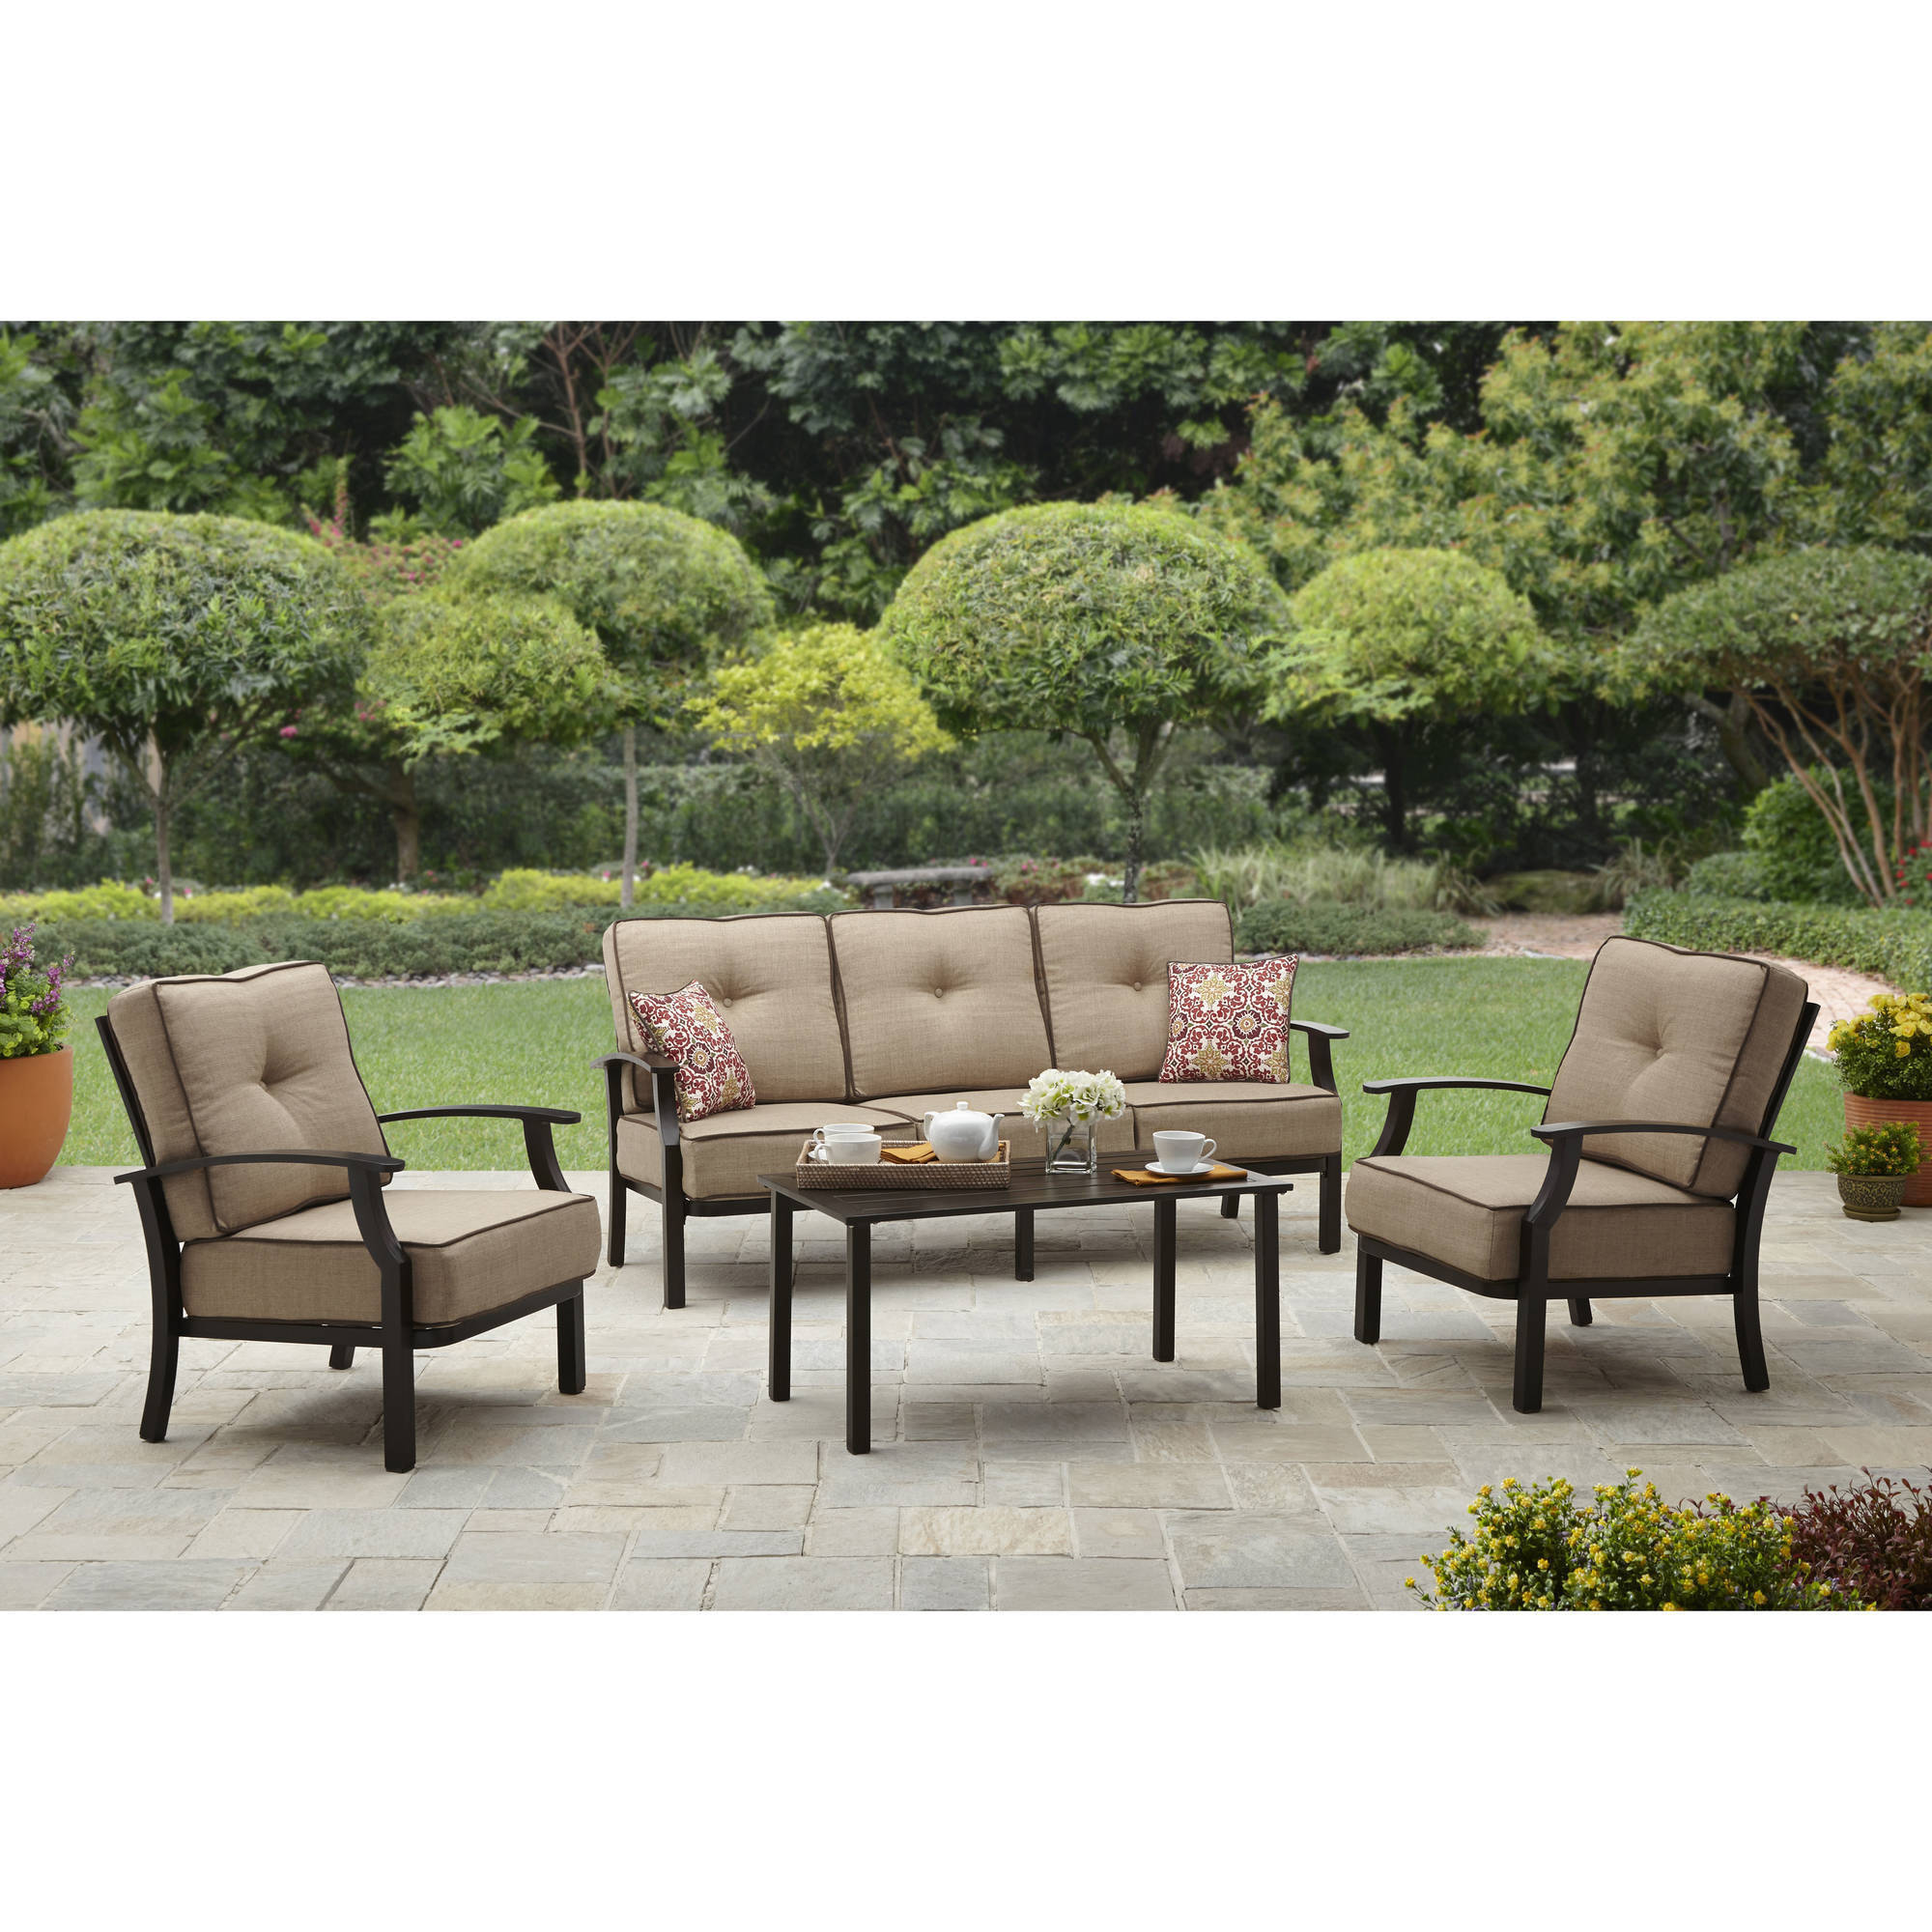 better homes and gardens outdoor furniture review rh newstoreview com better homes and garden patio furniture parts better homes and garden patio furniture